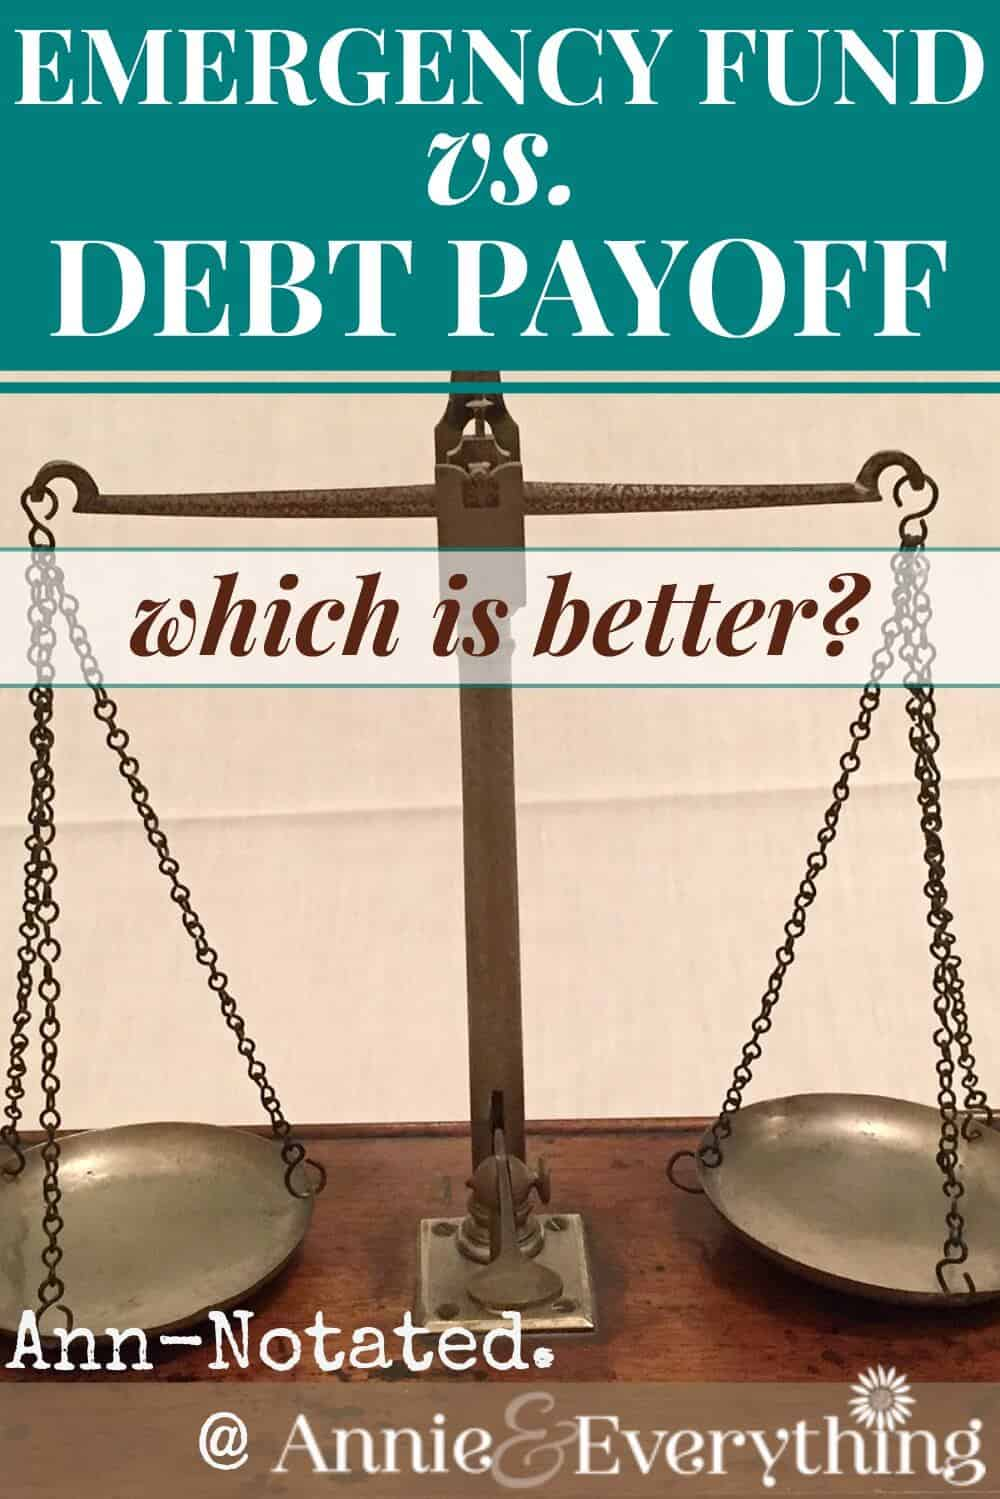 Should you build your emergency fund or payoff debt first? This post has links to articles from the experts answering that very question. It will save you the bother of researching it yourself!